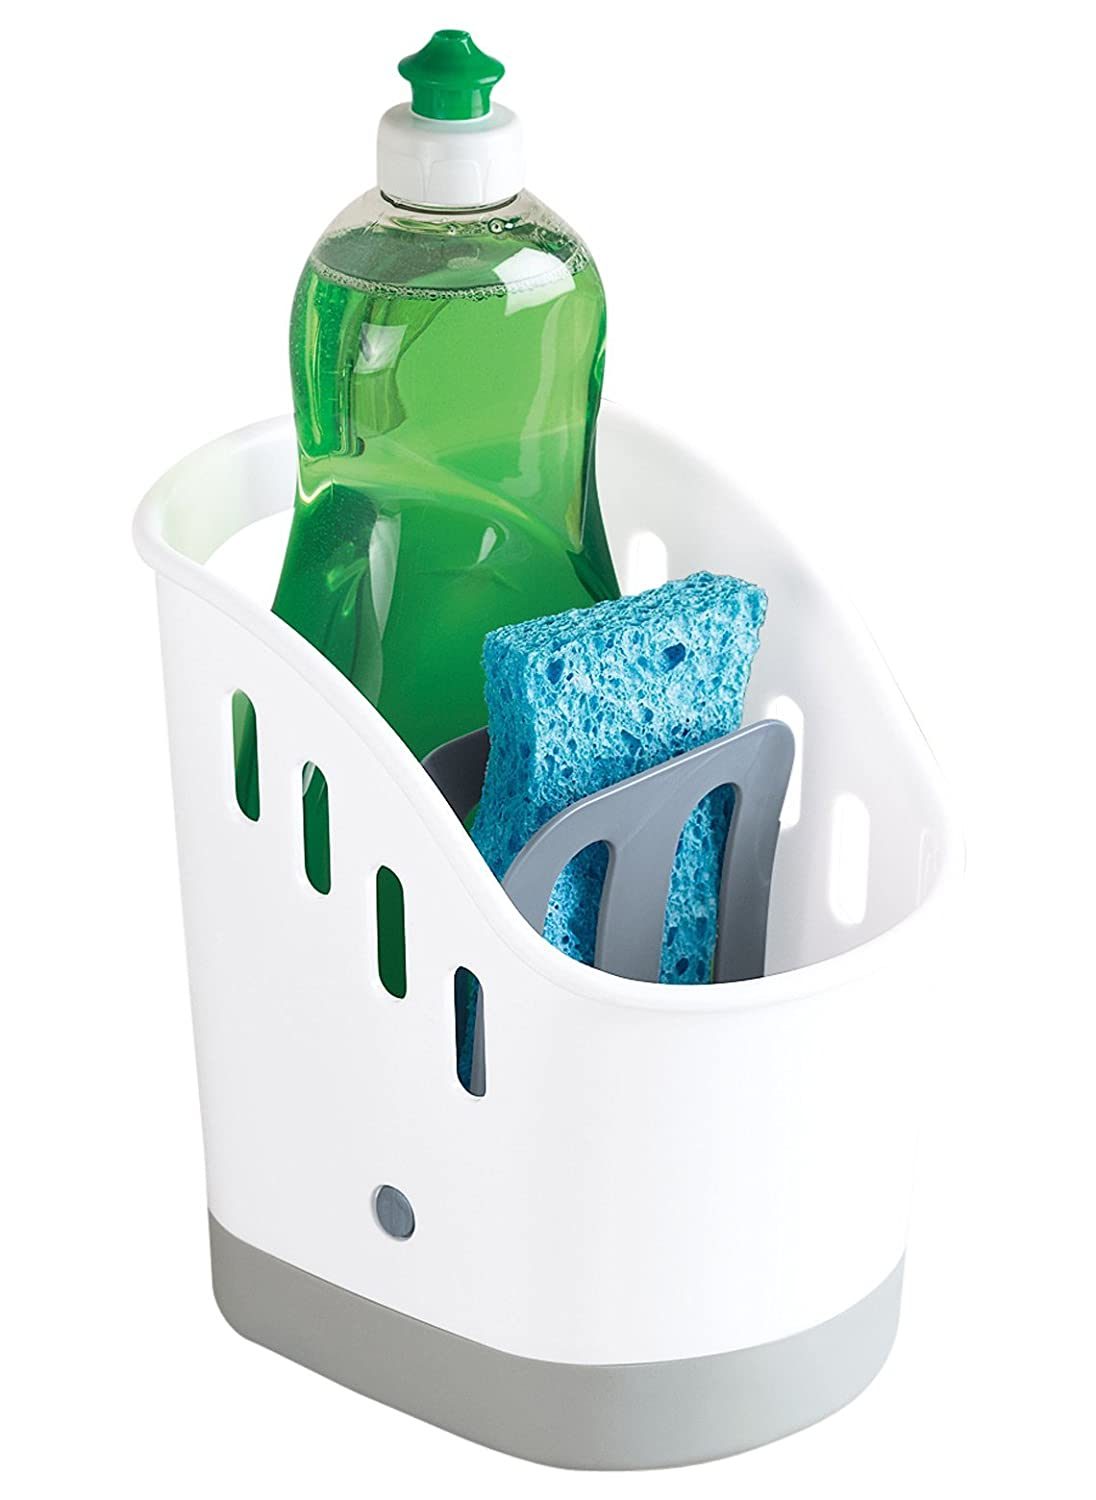 Sponge Caddy For Kitchen Sink